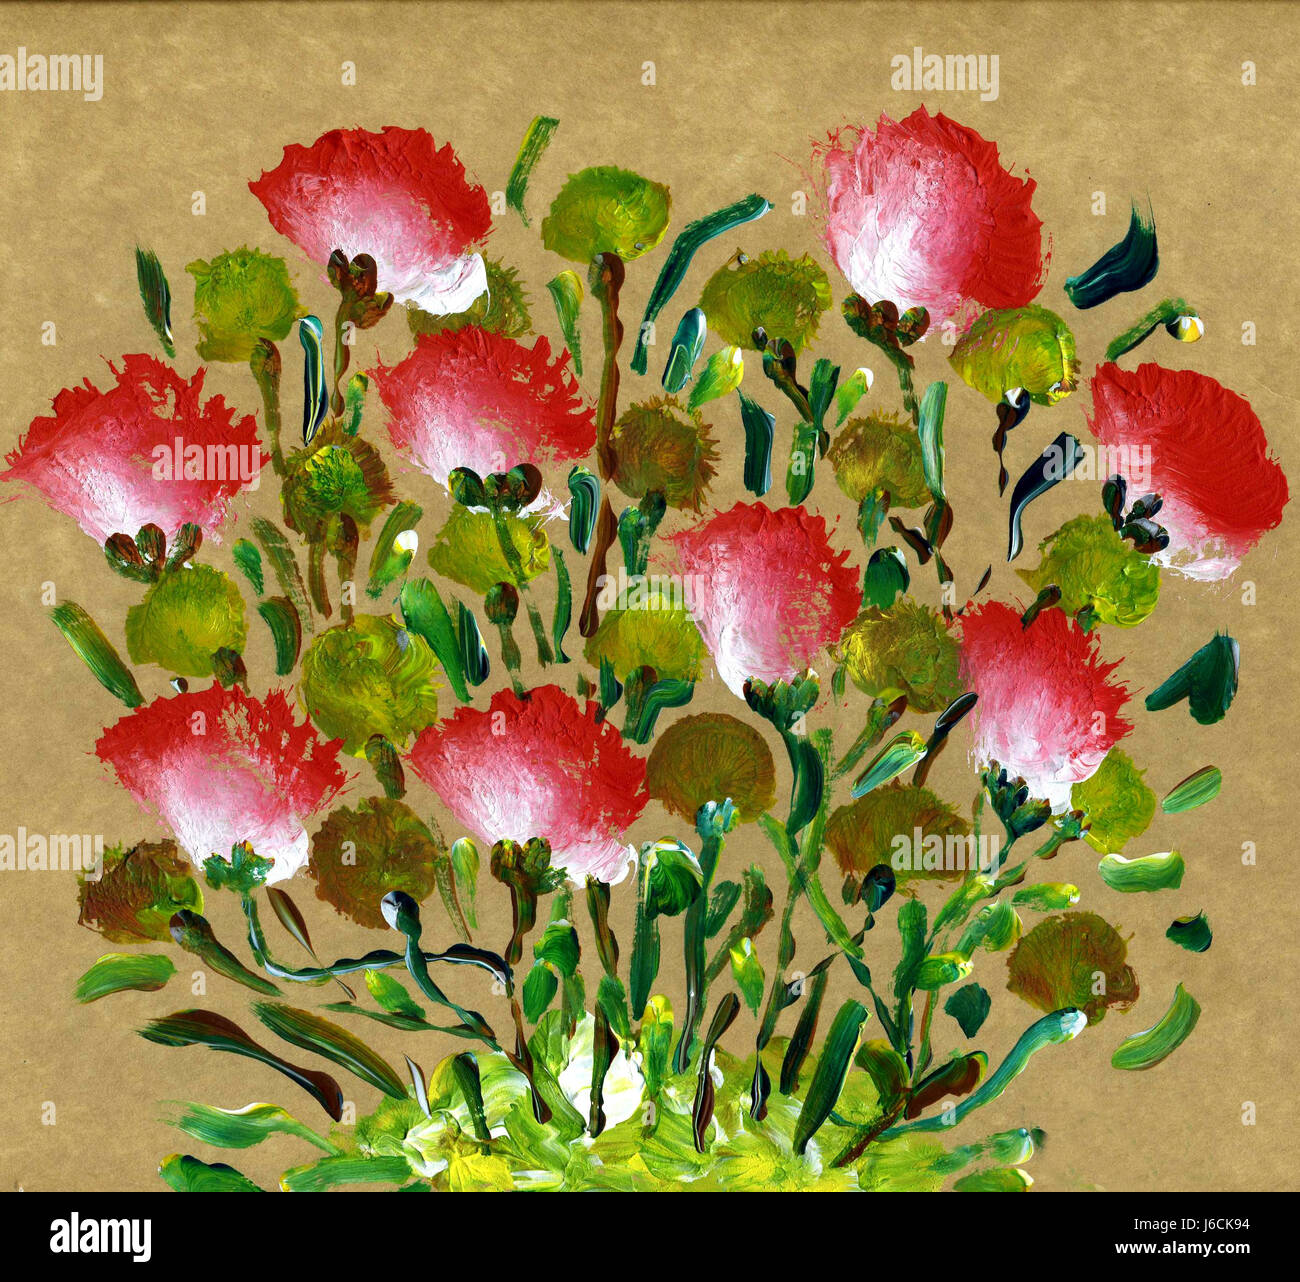 flower flowers plant hobby painting photo picture image copy Stock ...